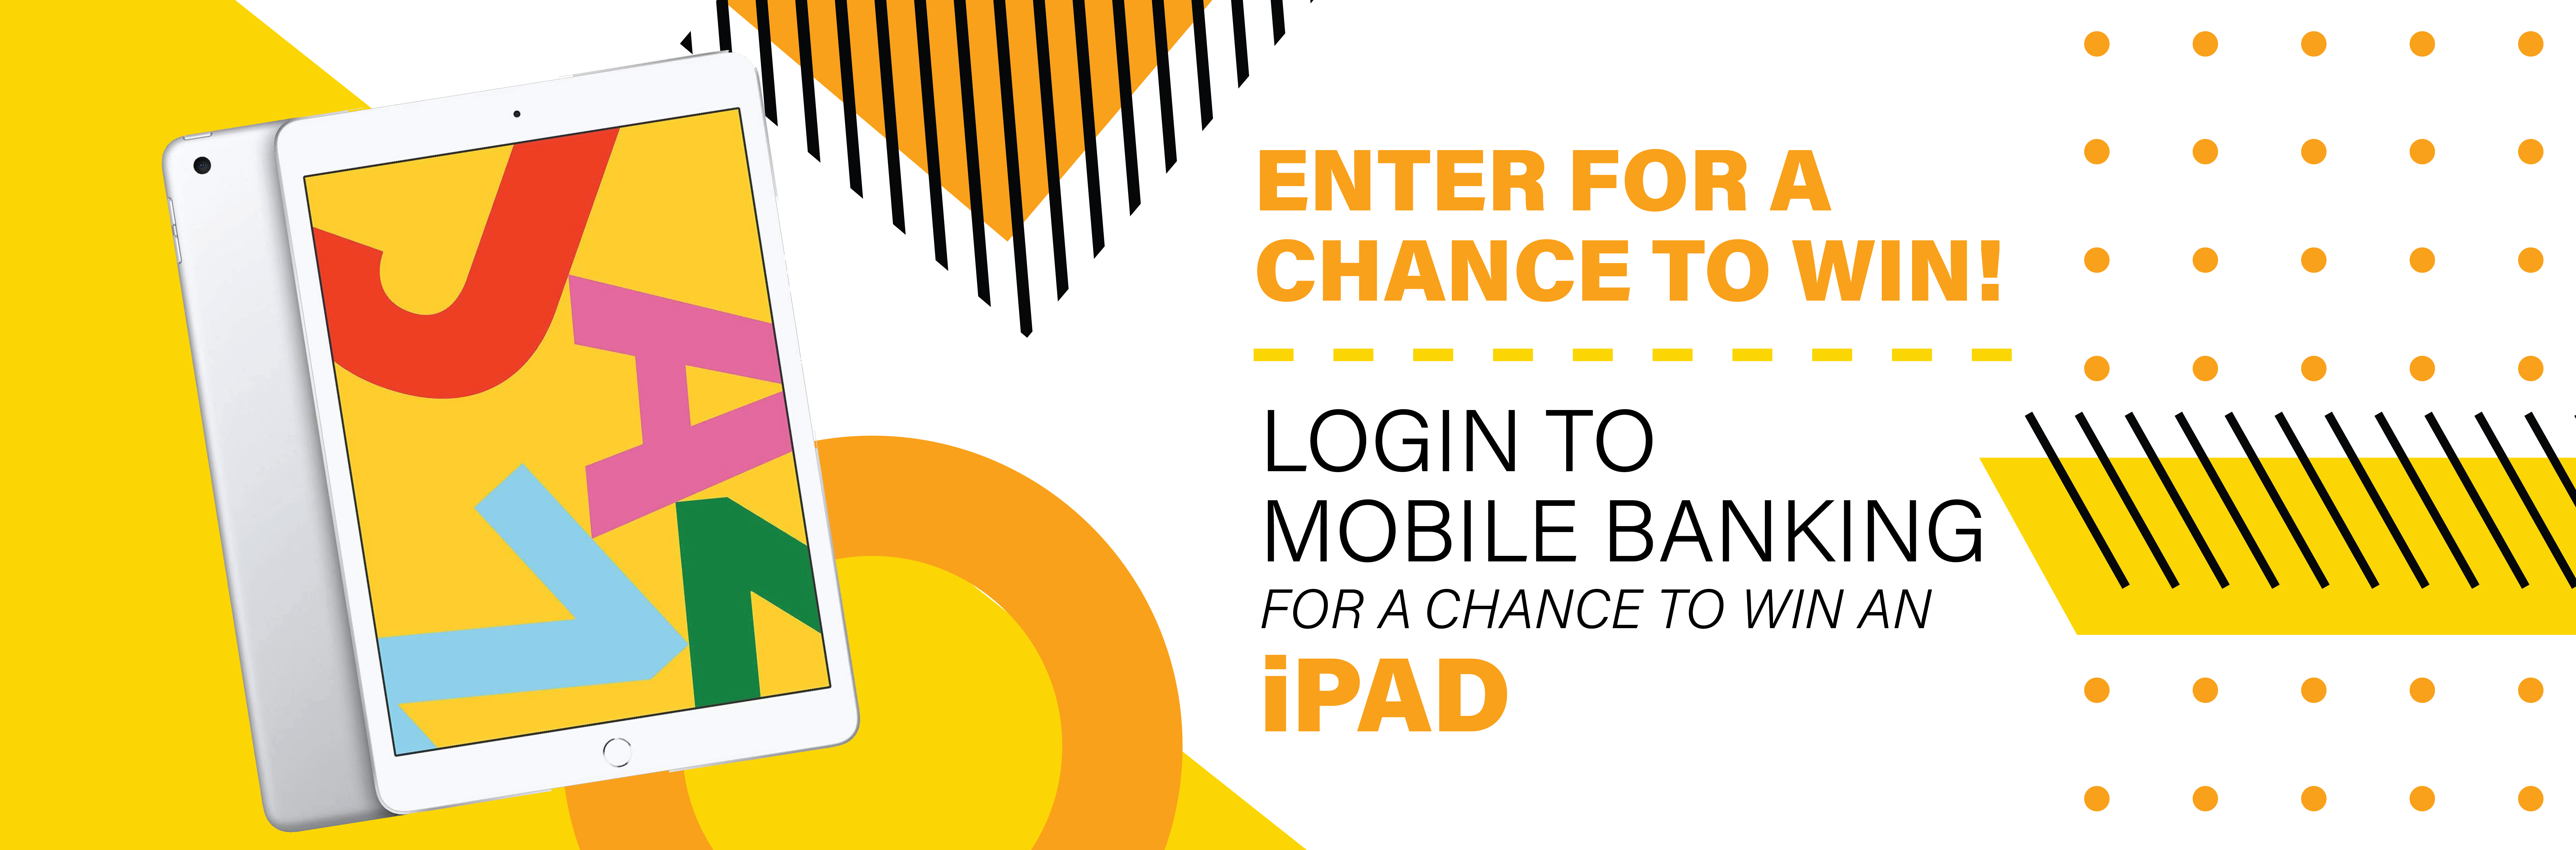 Enter for a chance to win. Login to mobile banking for a chance to win an iPad